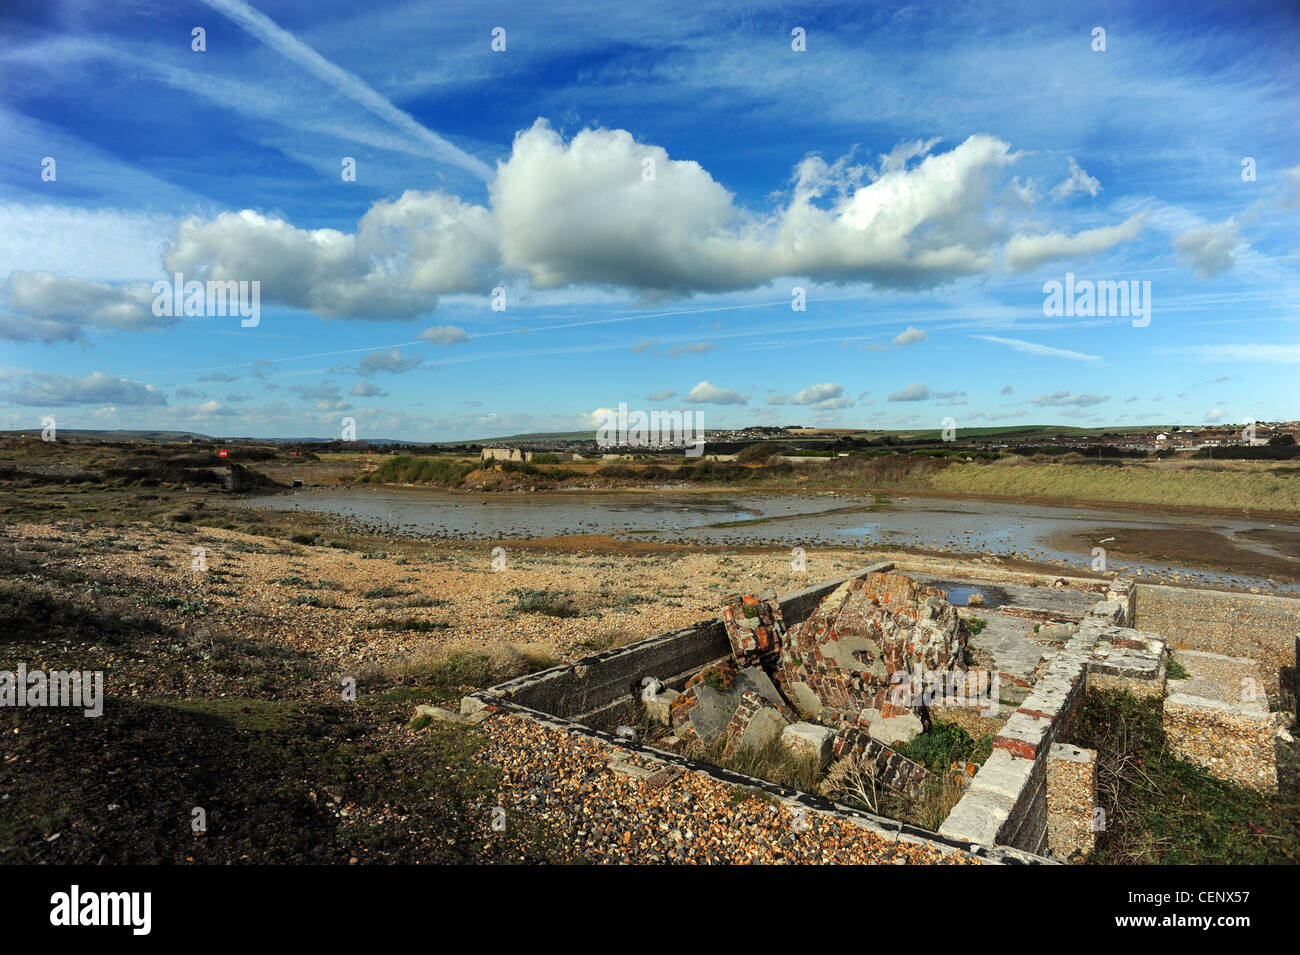 Tide Mills a derelict village abandoned in 1939, it consisted of a large water driven mill and numerous workers - Stock Image